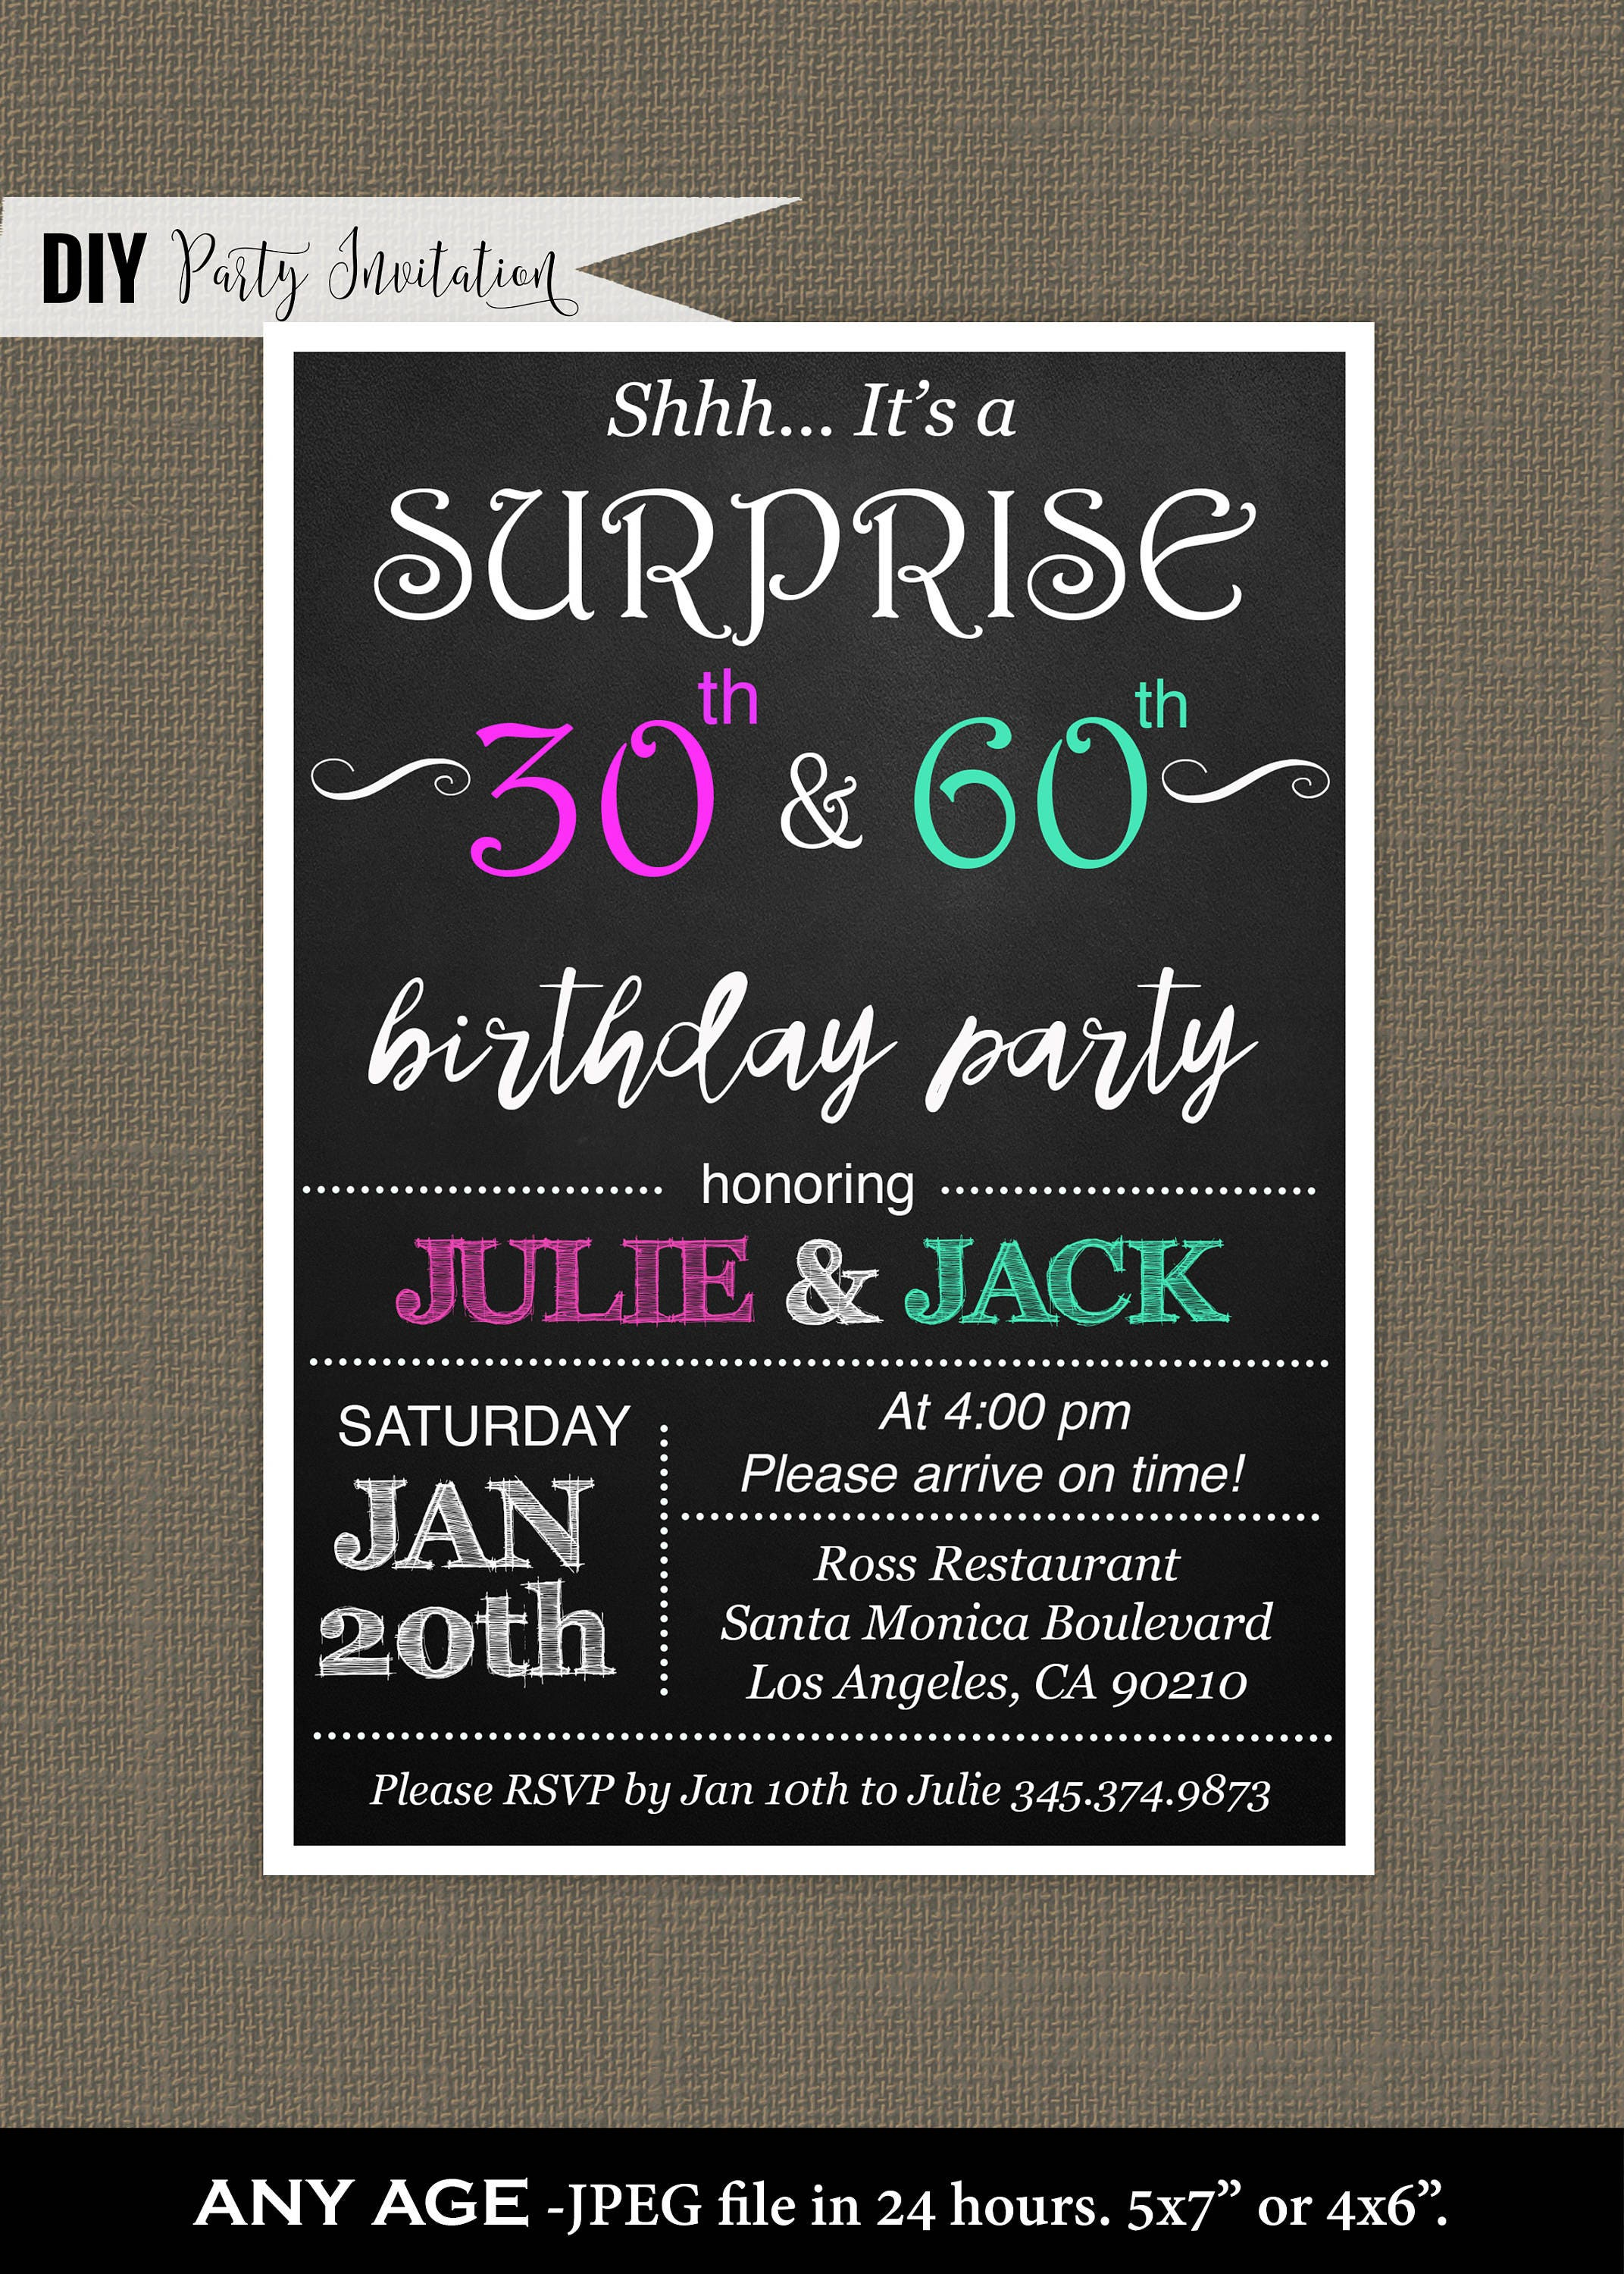 joint birthday joint birthday party invitations for adults surprise joint birthday party invite for adults joint invitation digital invitation